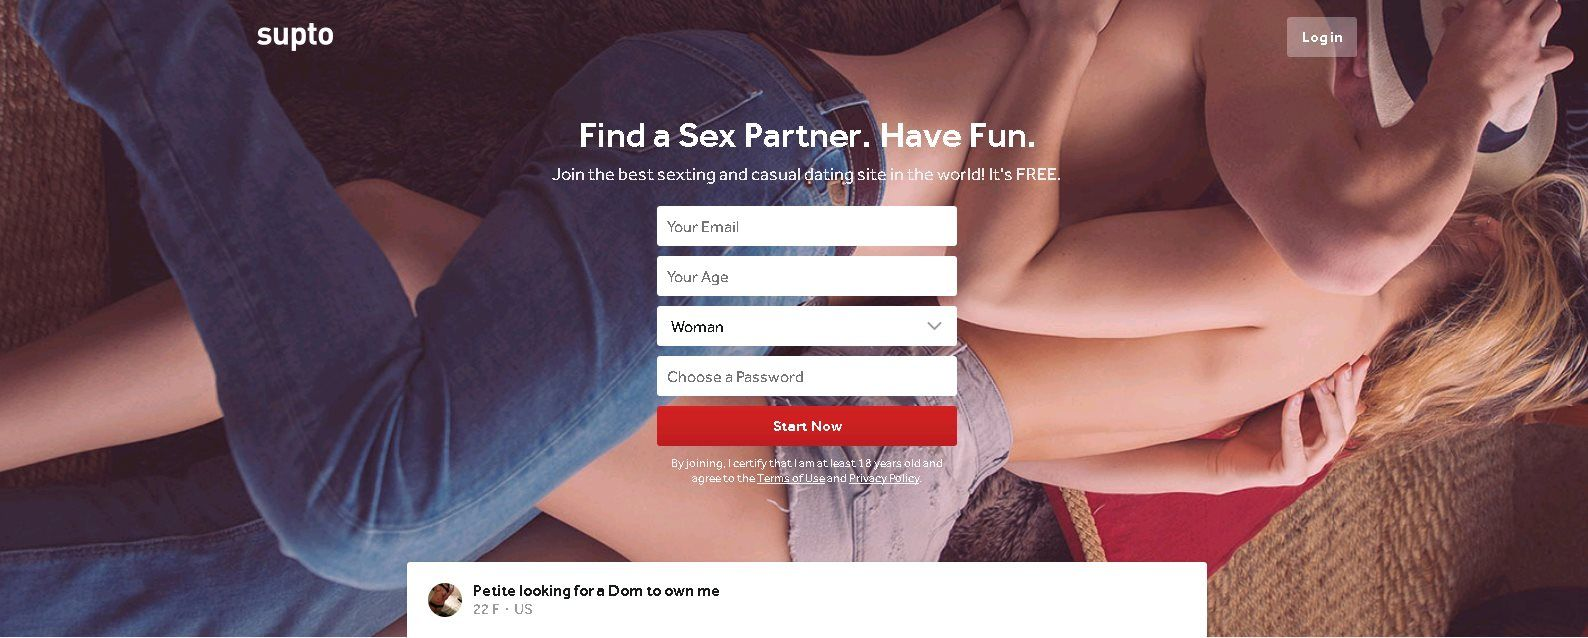 Free casual dating site